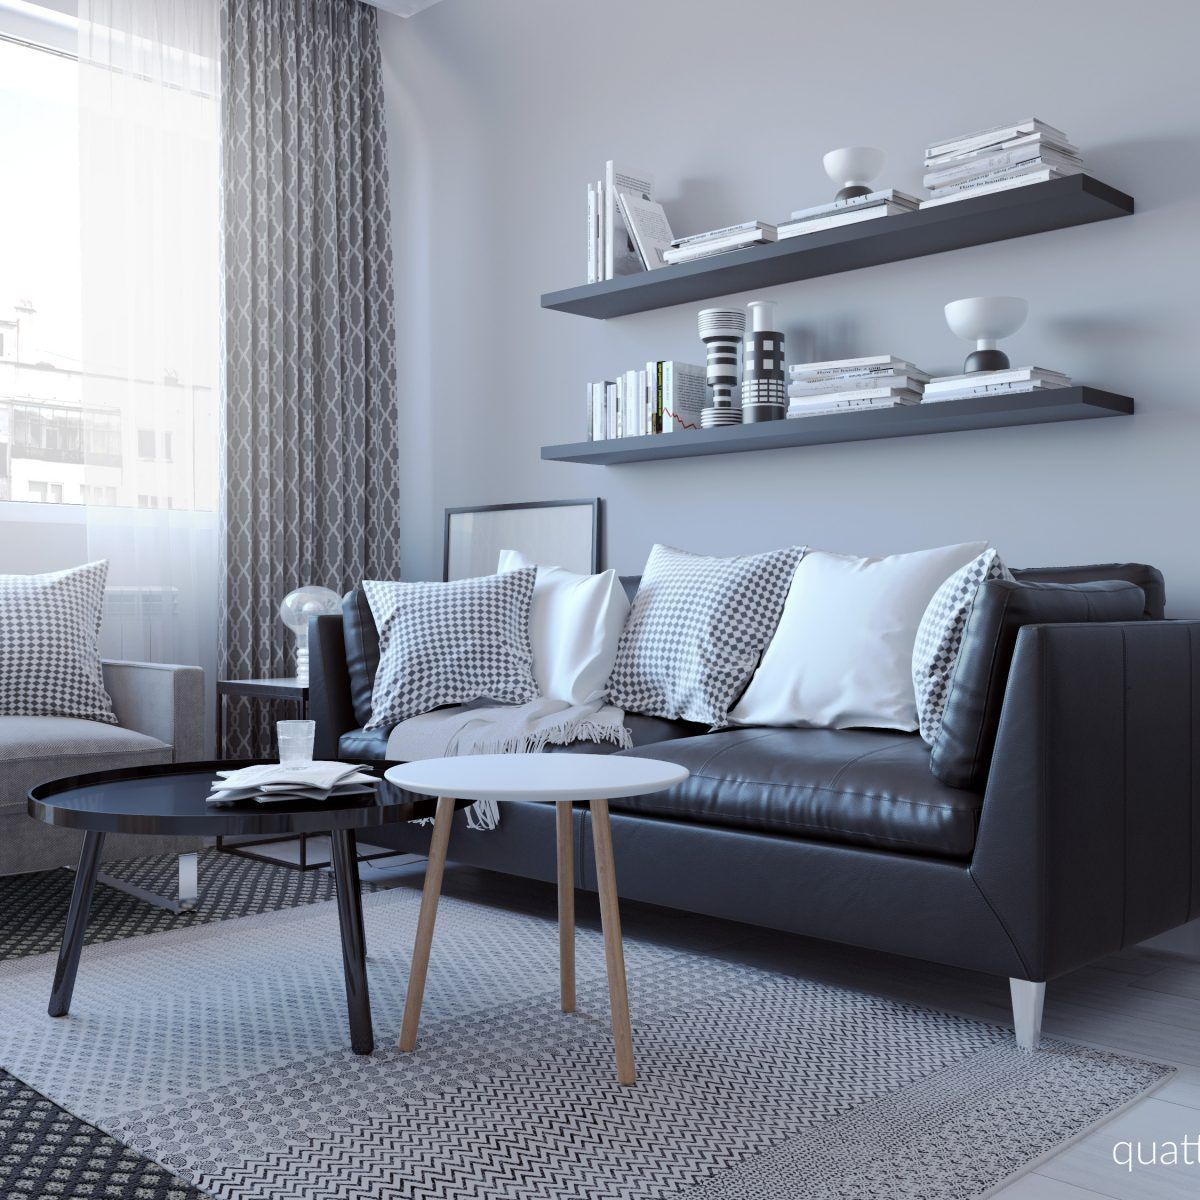 From deciding on a color palette to updating your furniture, follow these 5 steps to help you update your living room. Скандинавски полъх   Black sofa living room, Black sofa ...